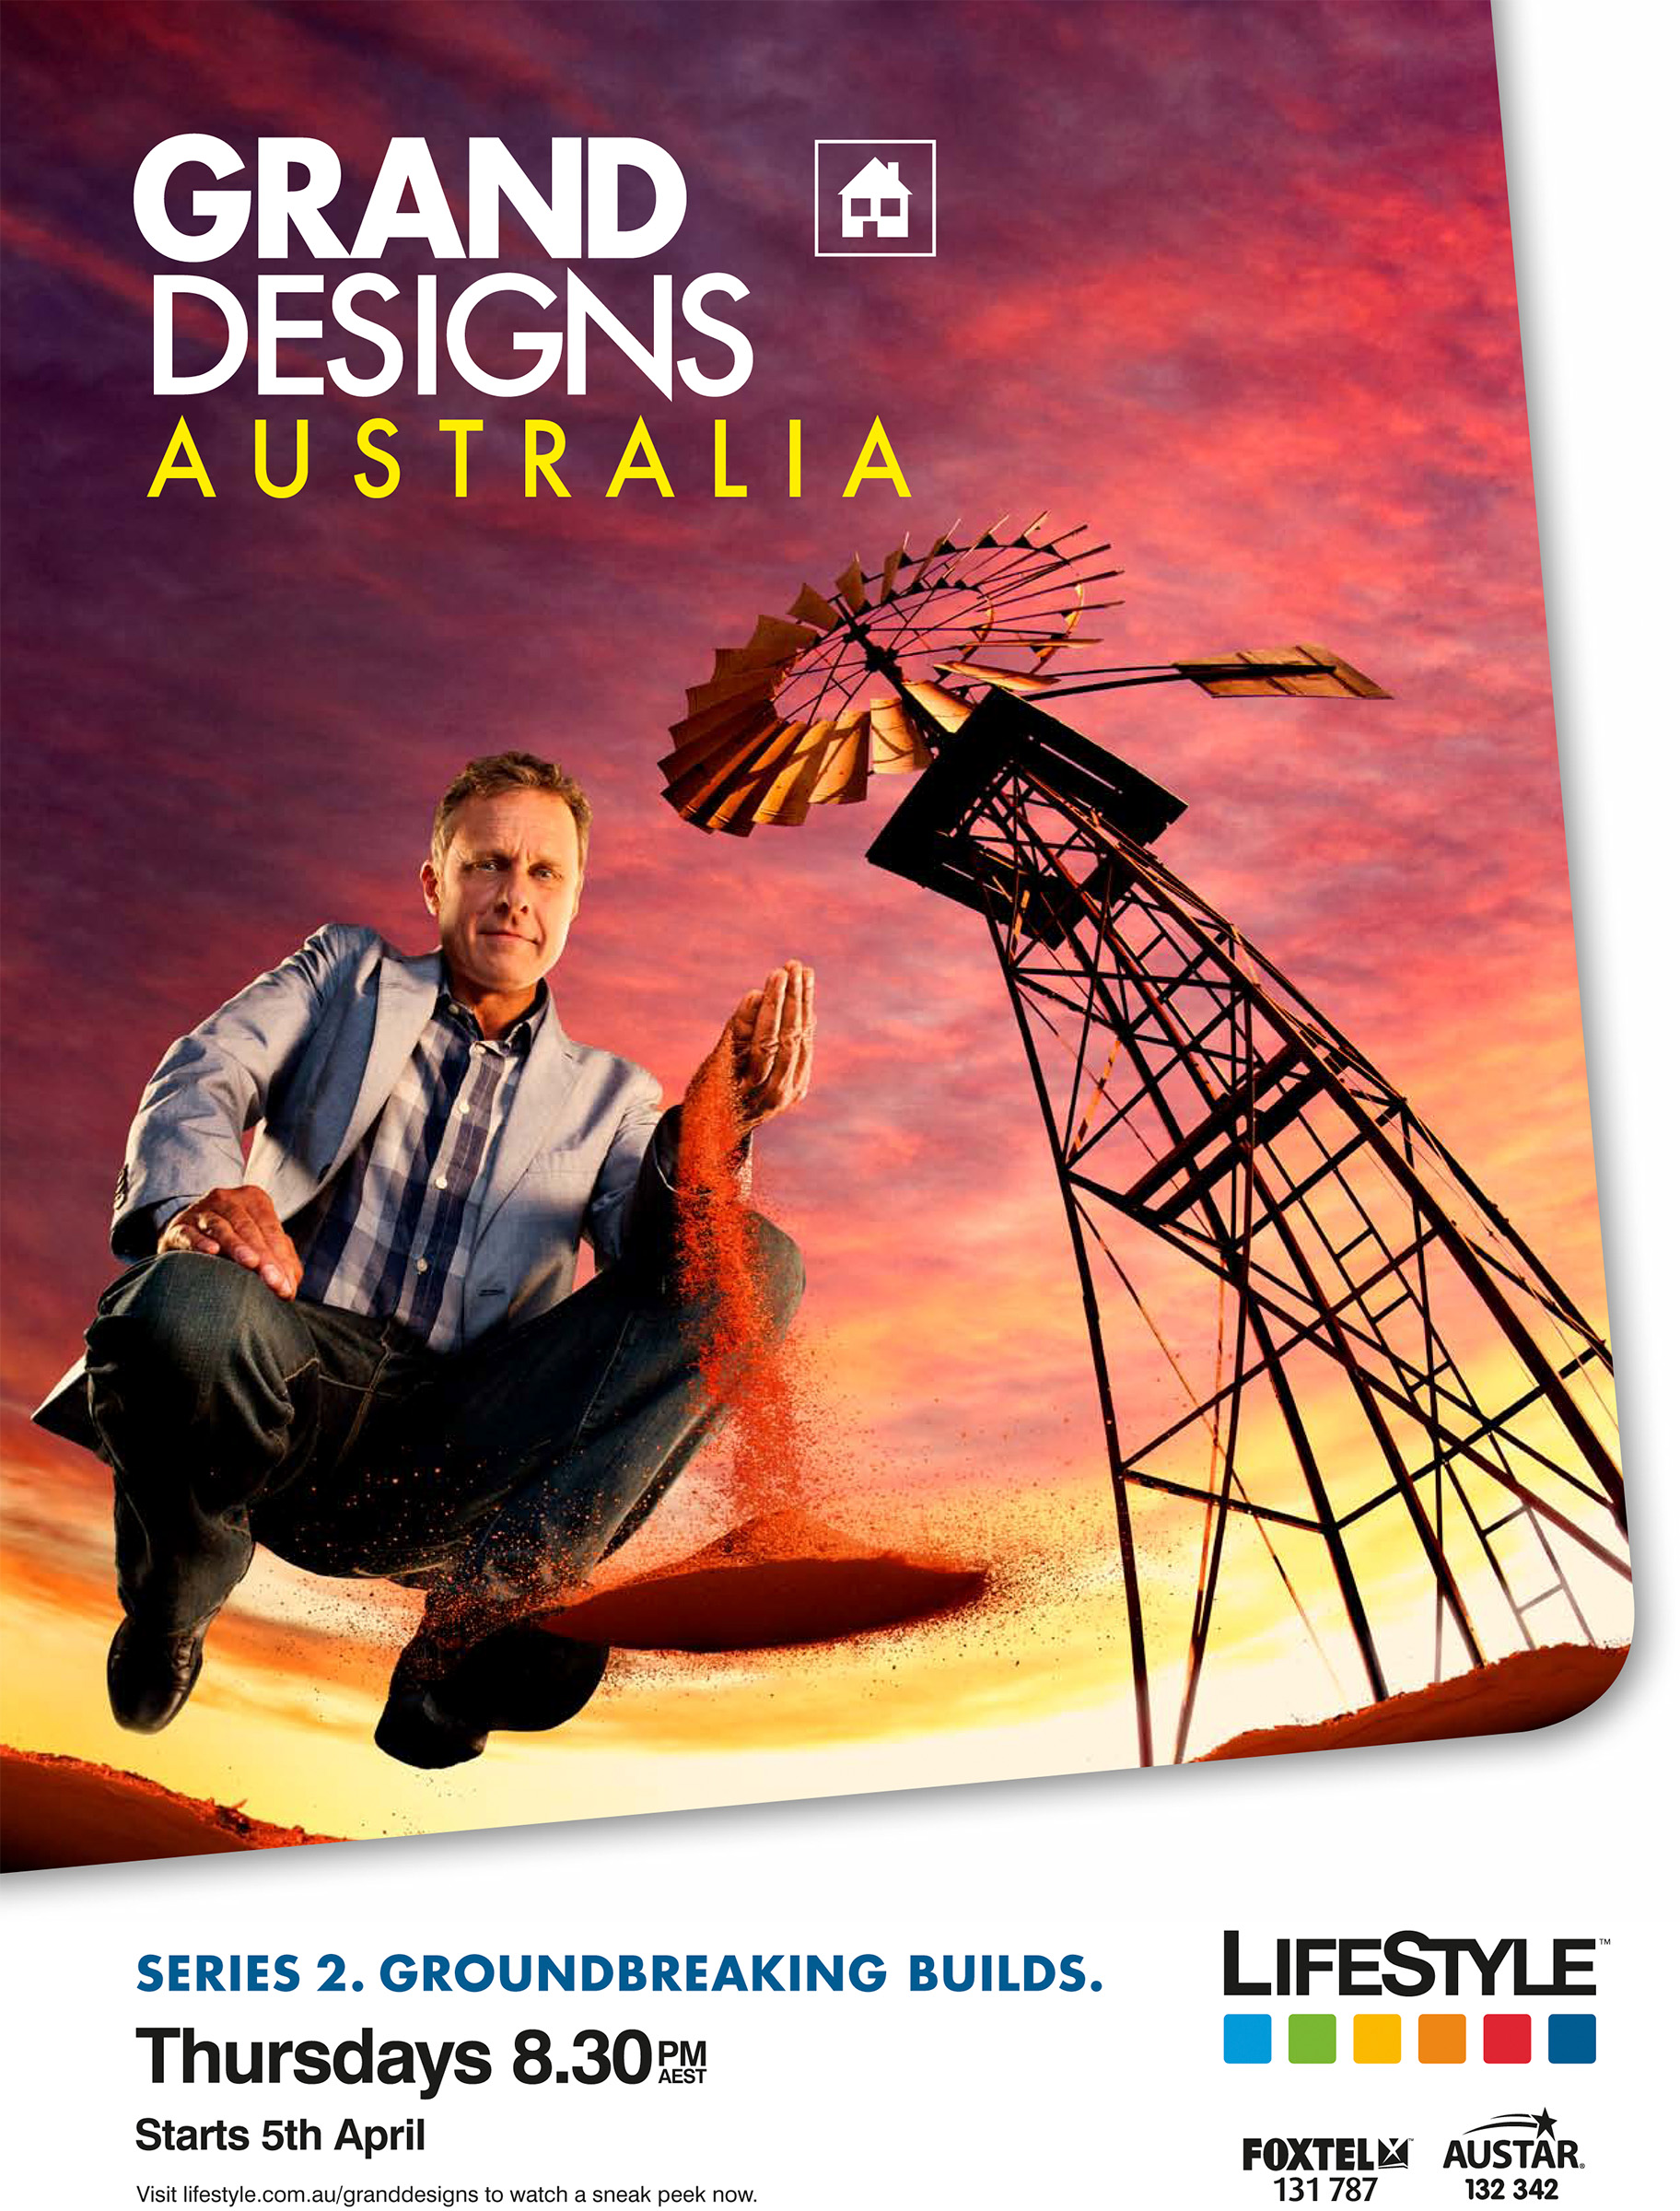 Grand Designs Australia advertising campaign Foxtel Life Style with Peter Maddison, Architect, floating, outback windmill